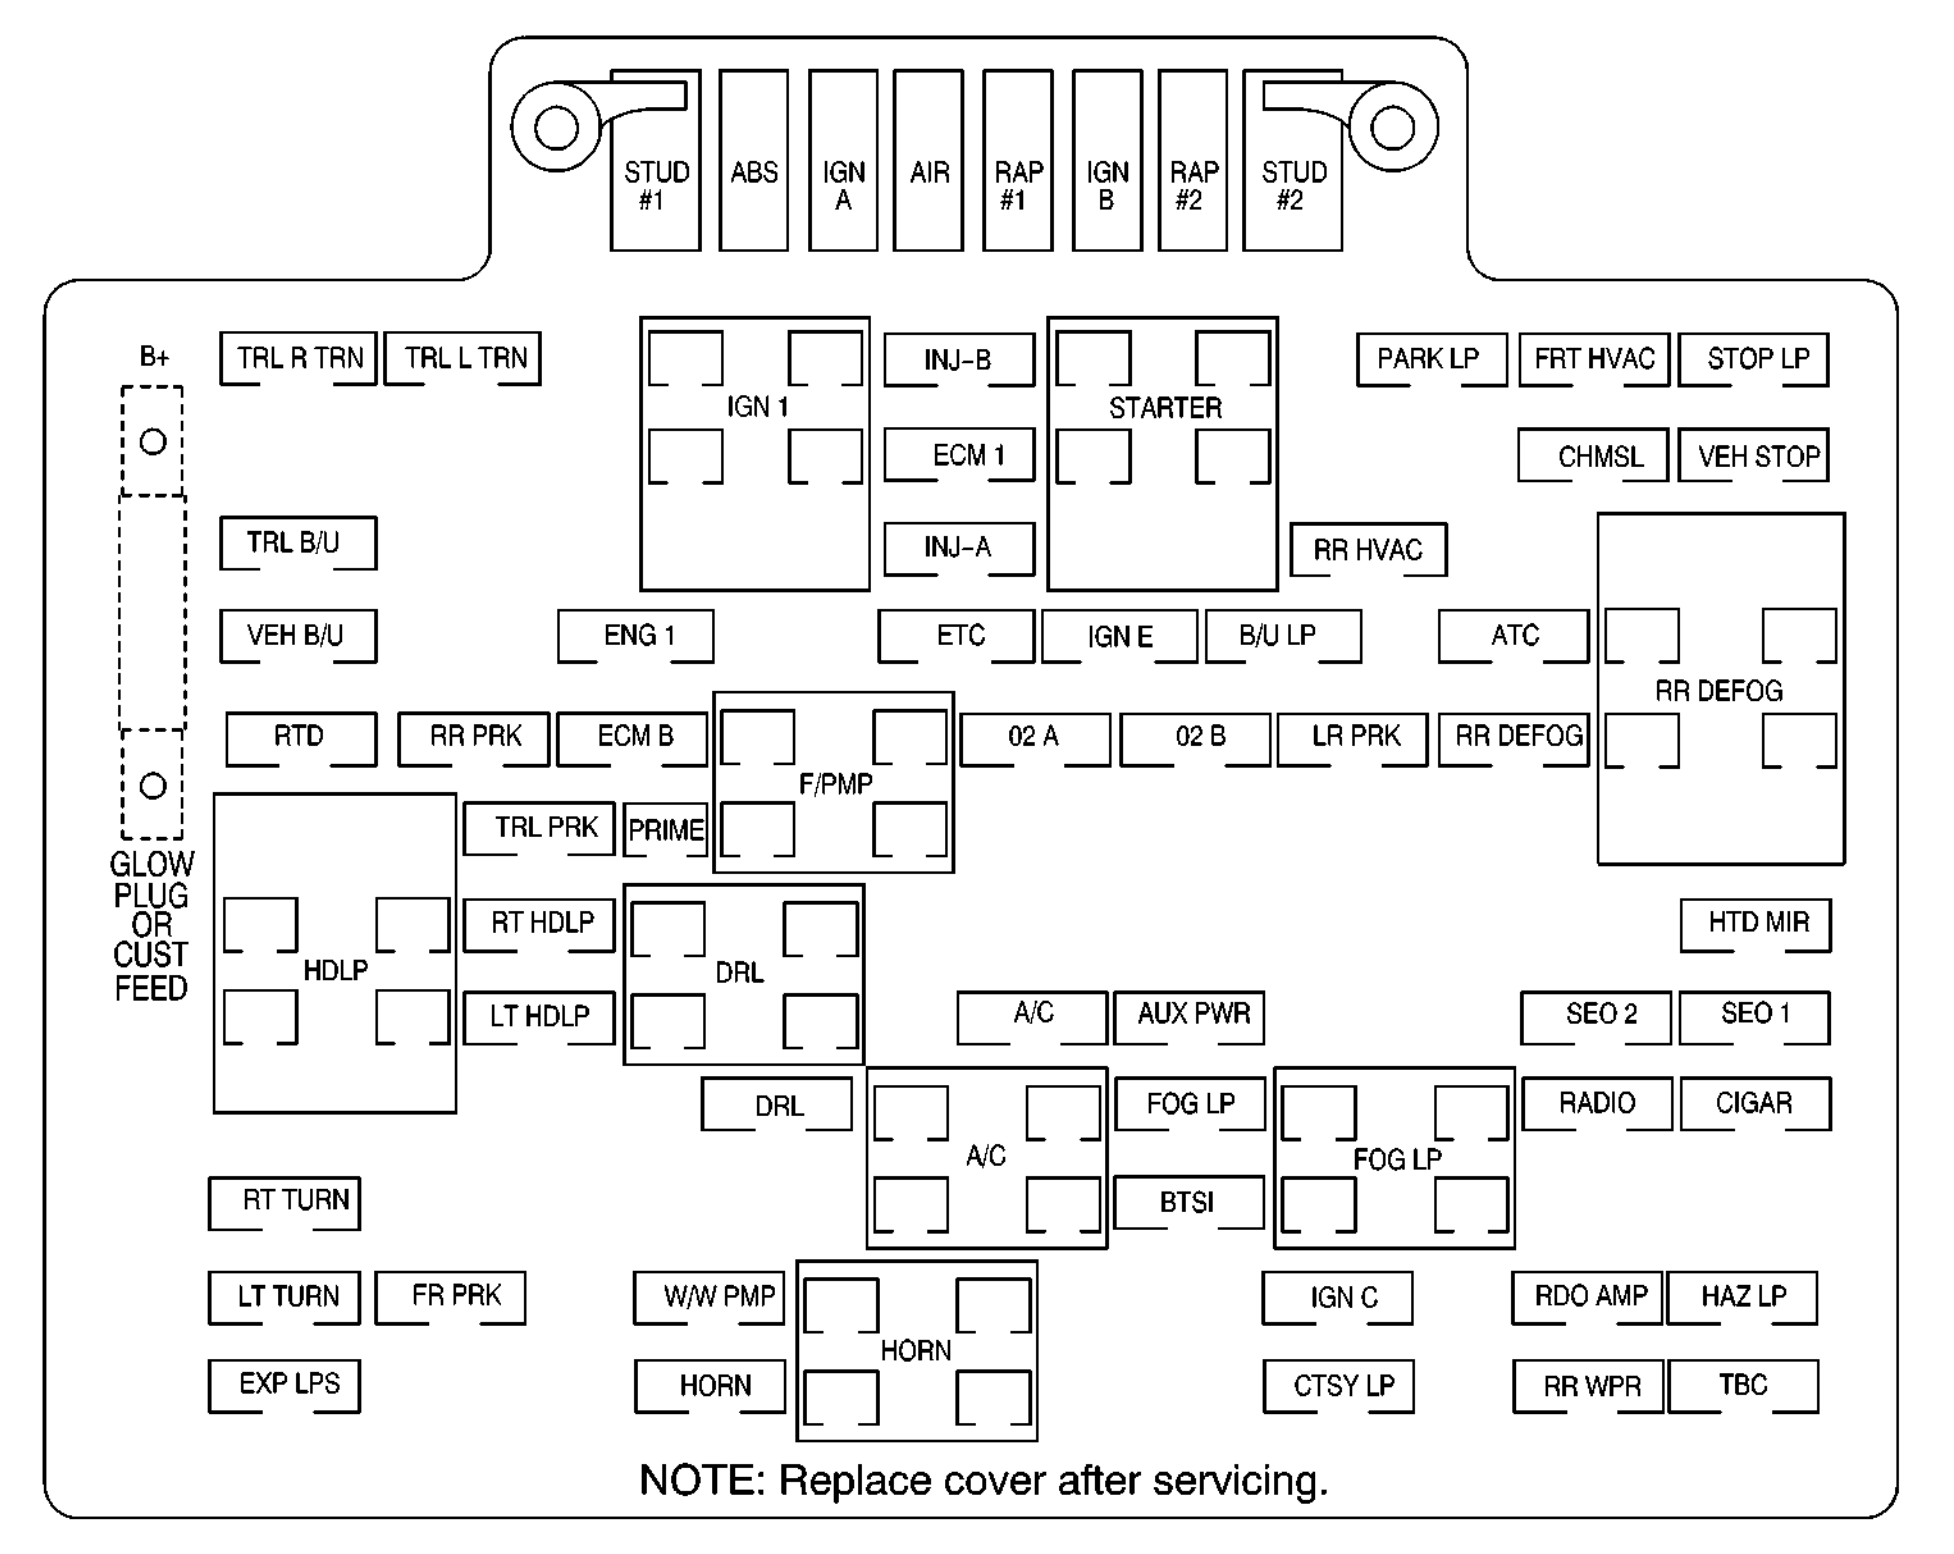 2001 crown victoria fuse box diagram